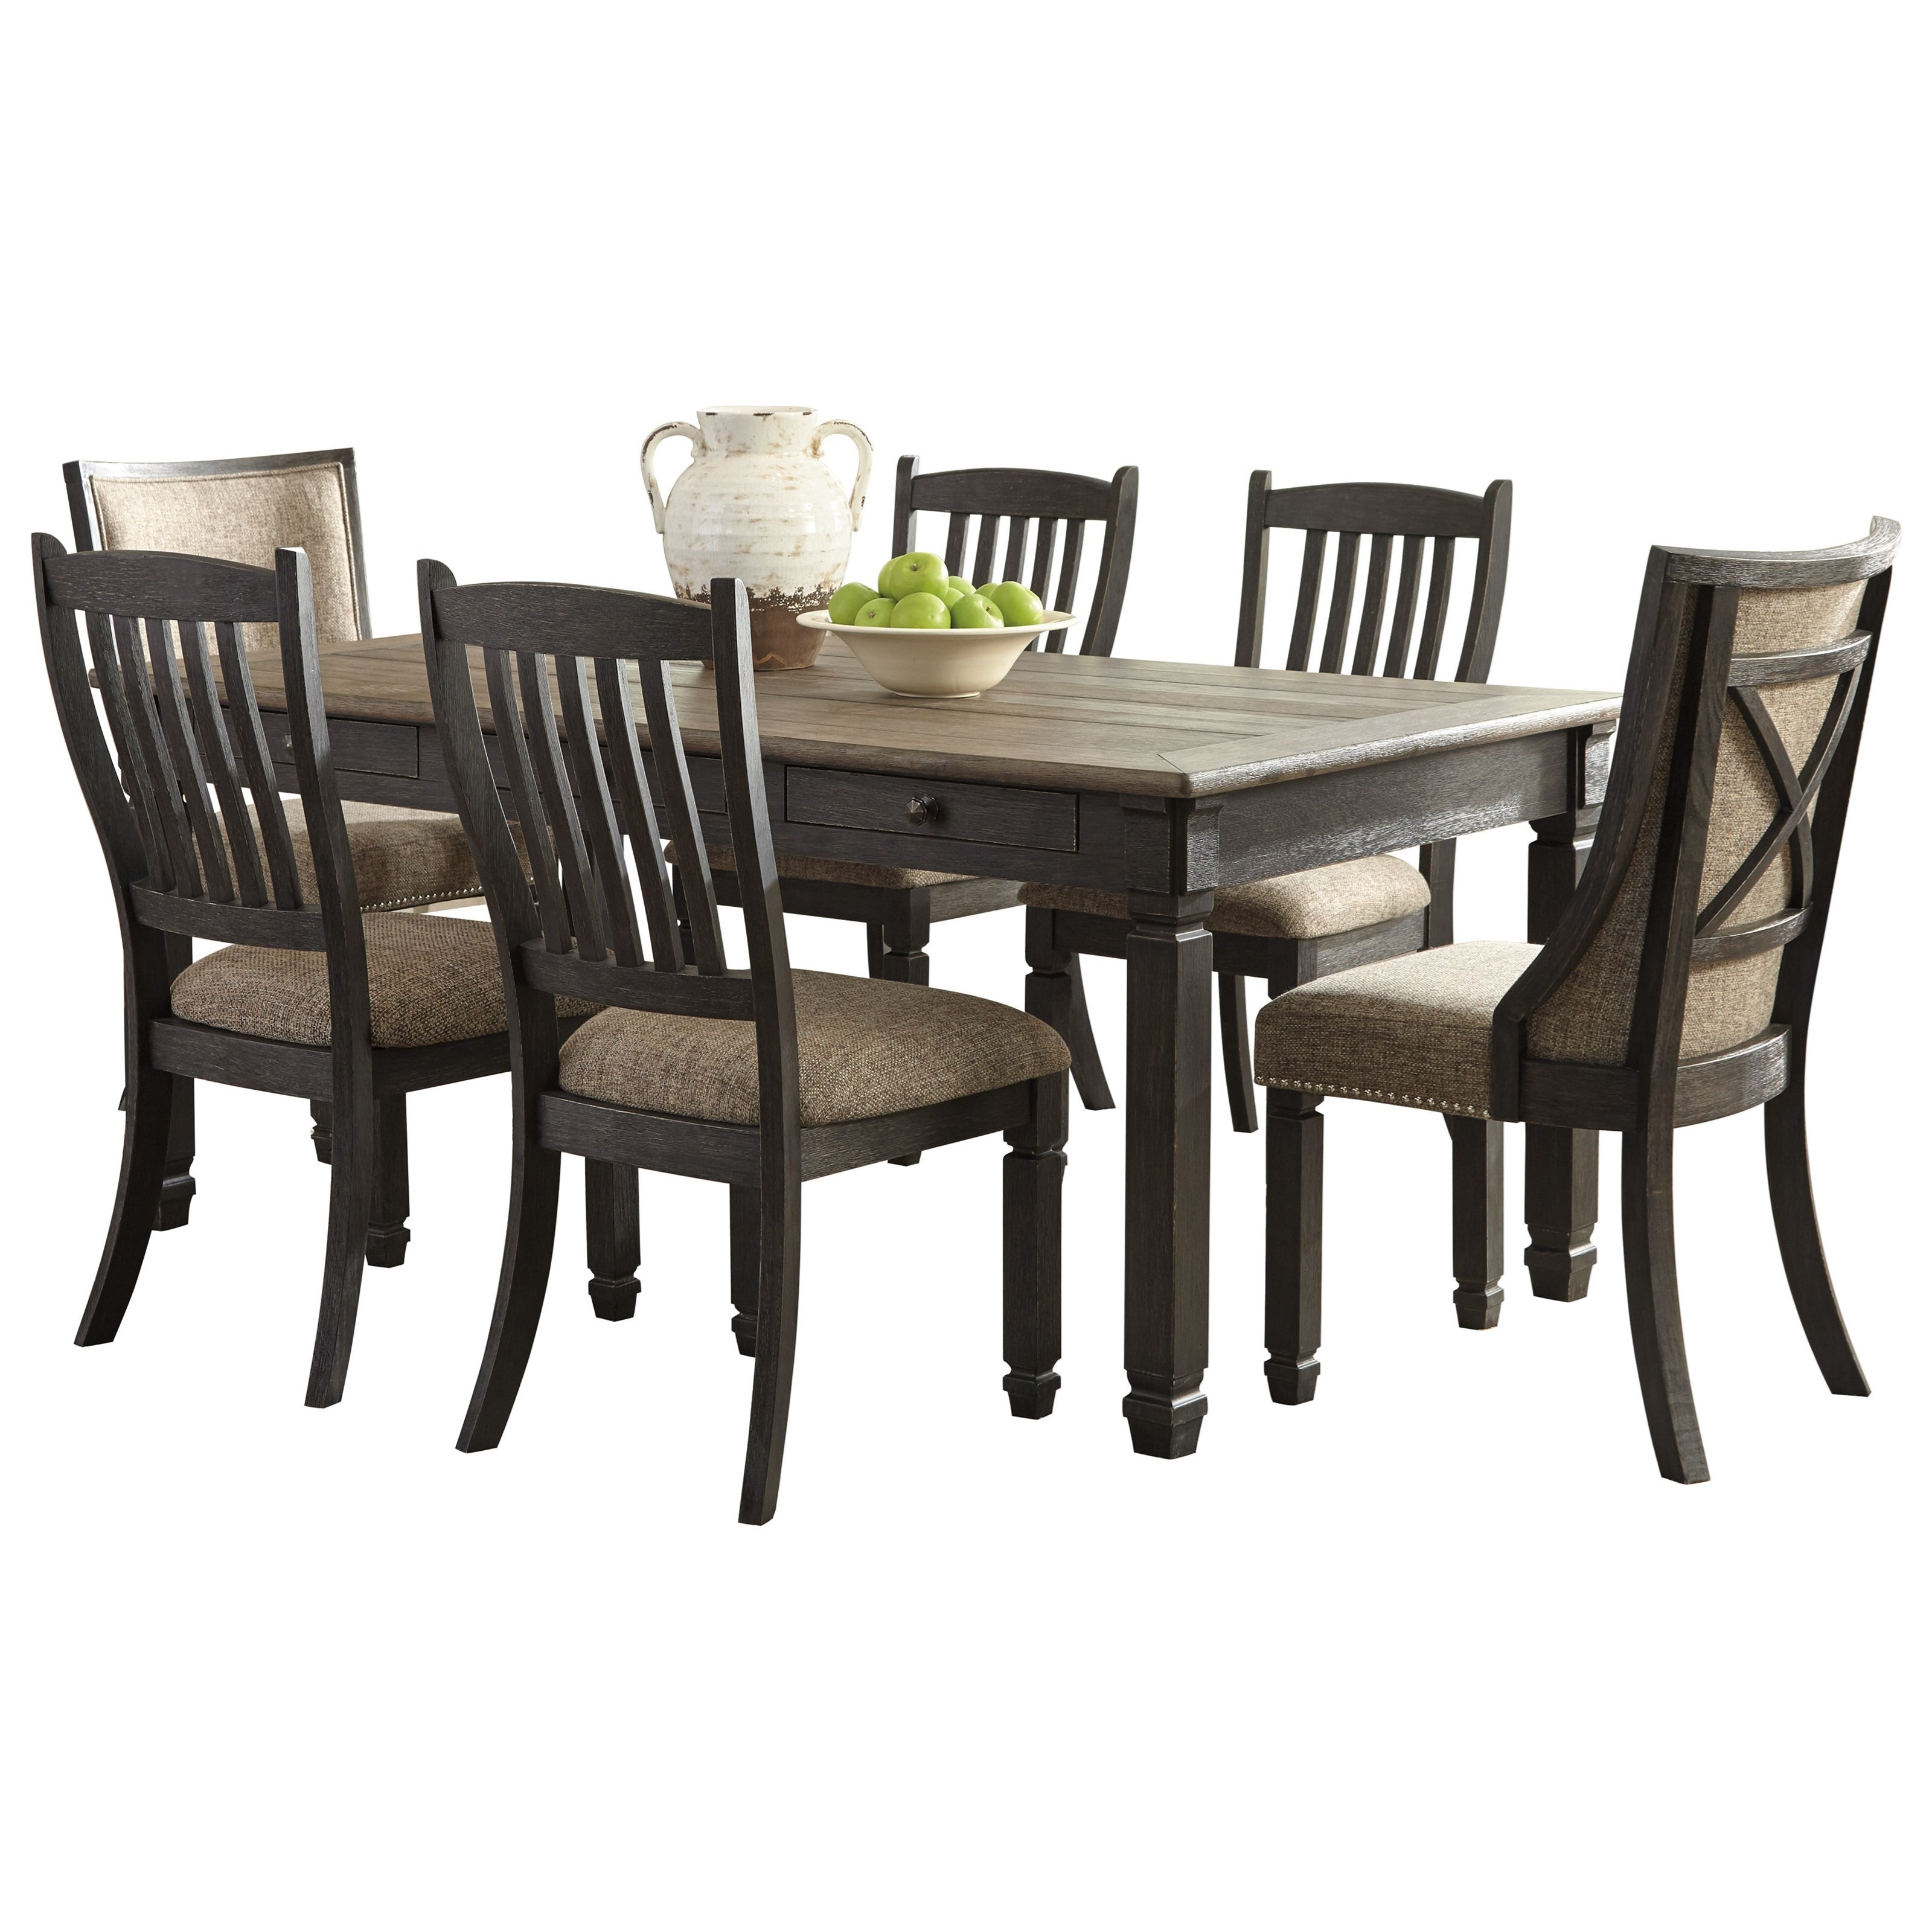 Tyler Creek 7-Piece Table and Chair Set by Signature Design by Ashley at Northeast Factory Direct